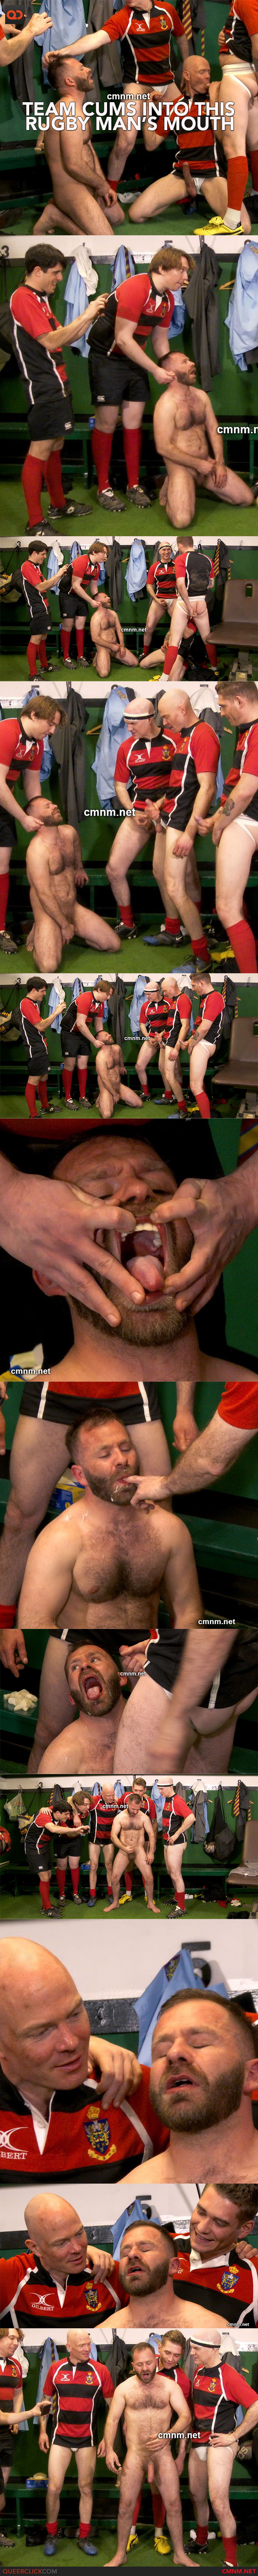 Team Cums Into This Rugby Man's Mouth at CMNM.net